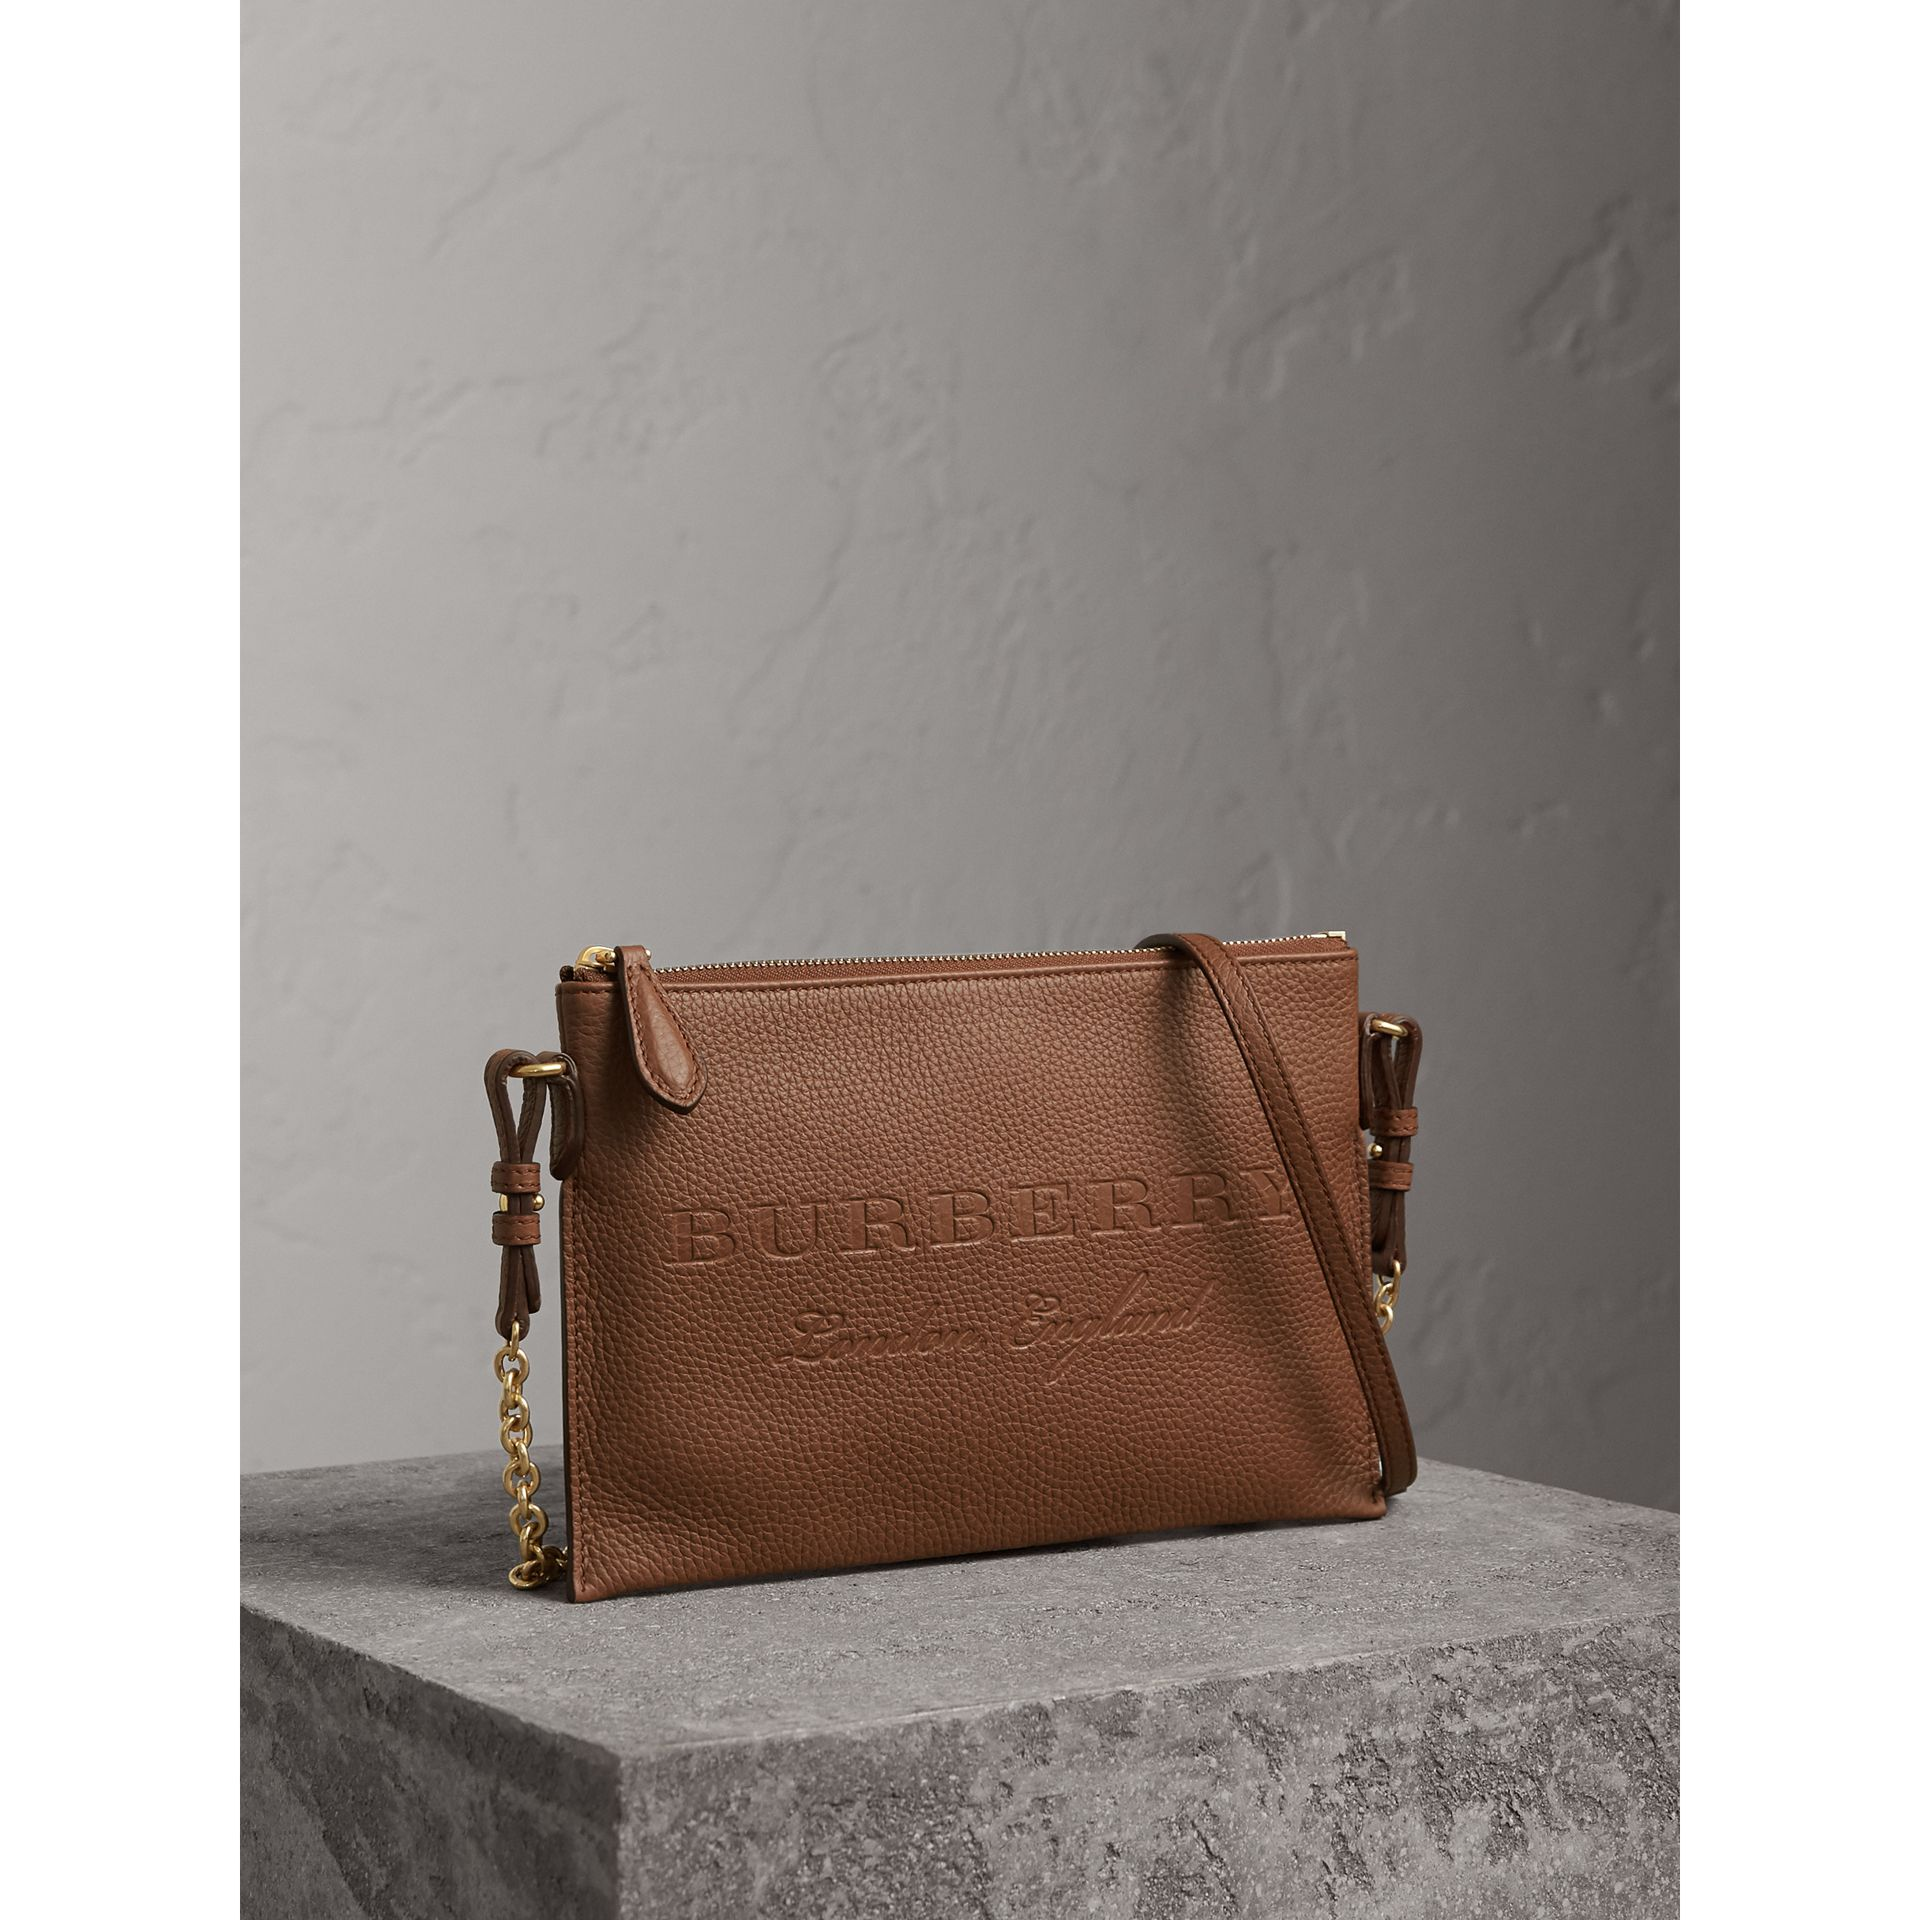 Embossed Leather Clutch Bag in Chestnut Brown - Women | Burberry - gallery image 7